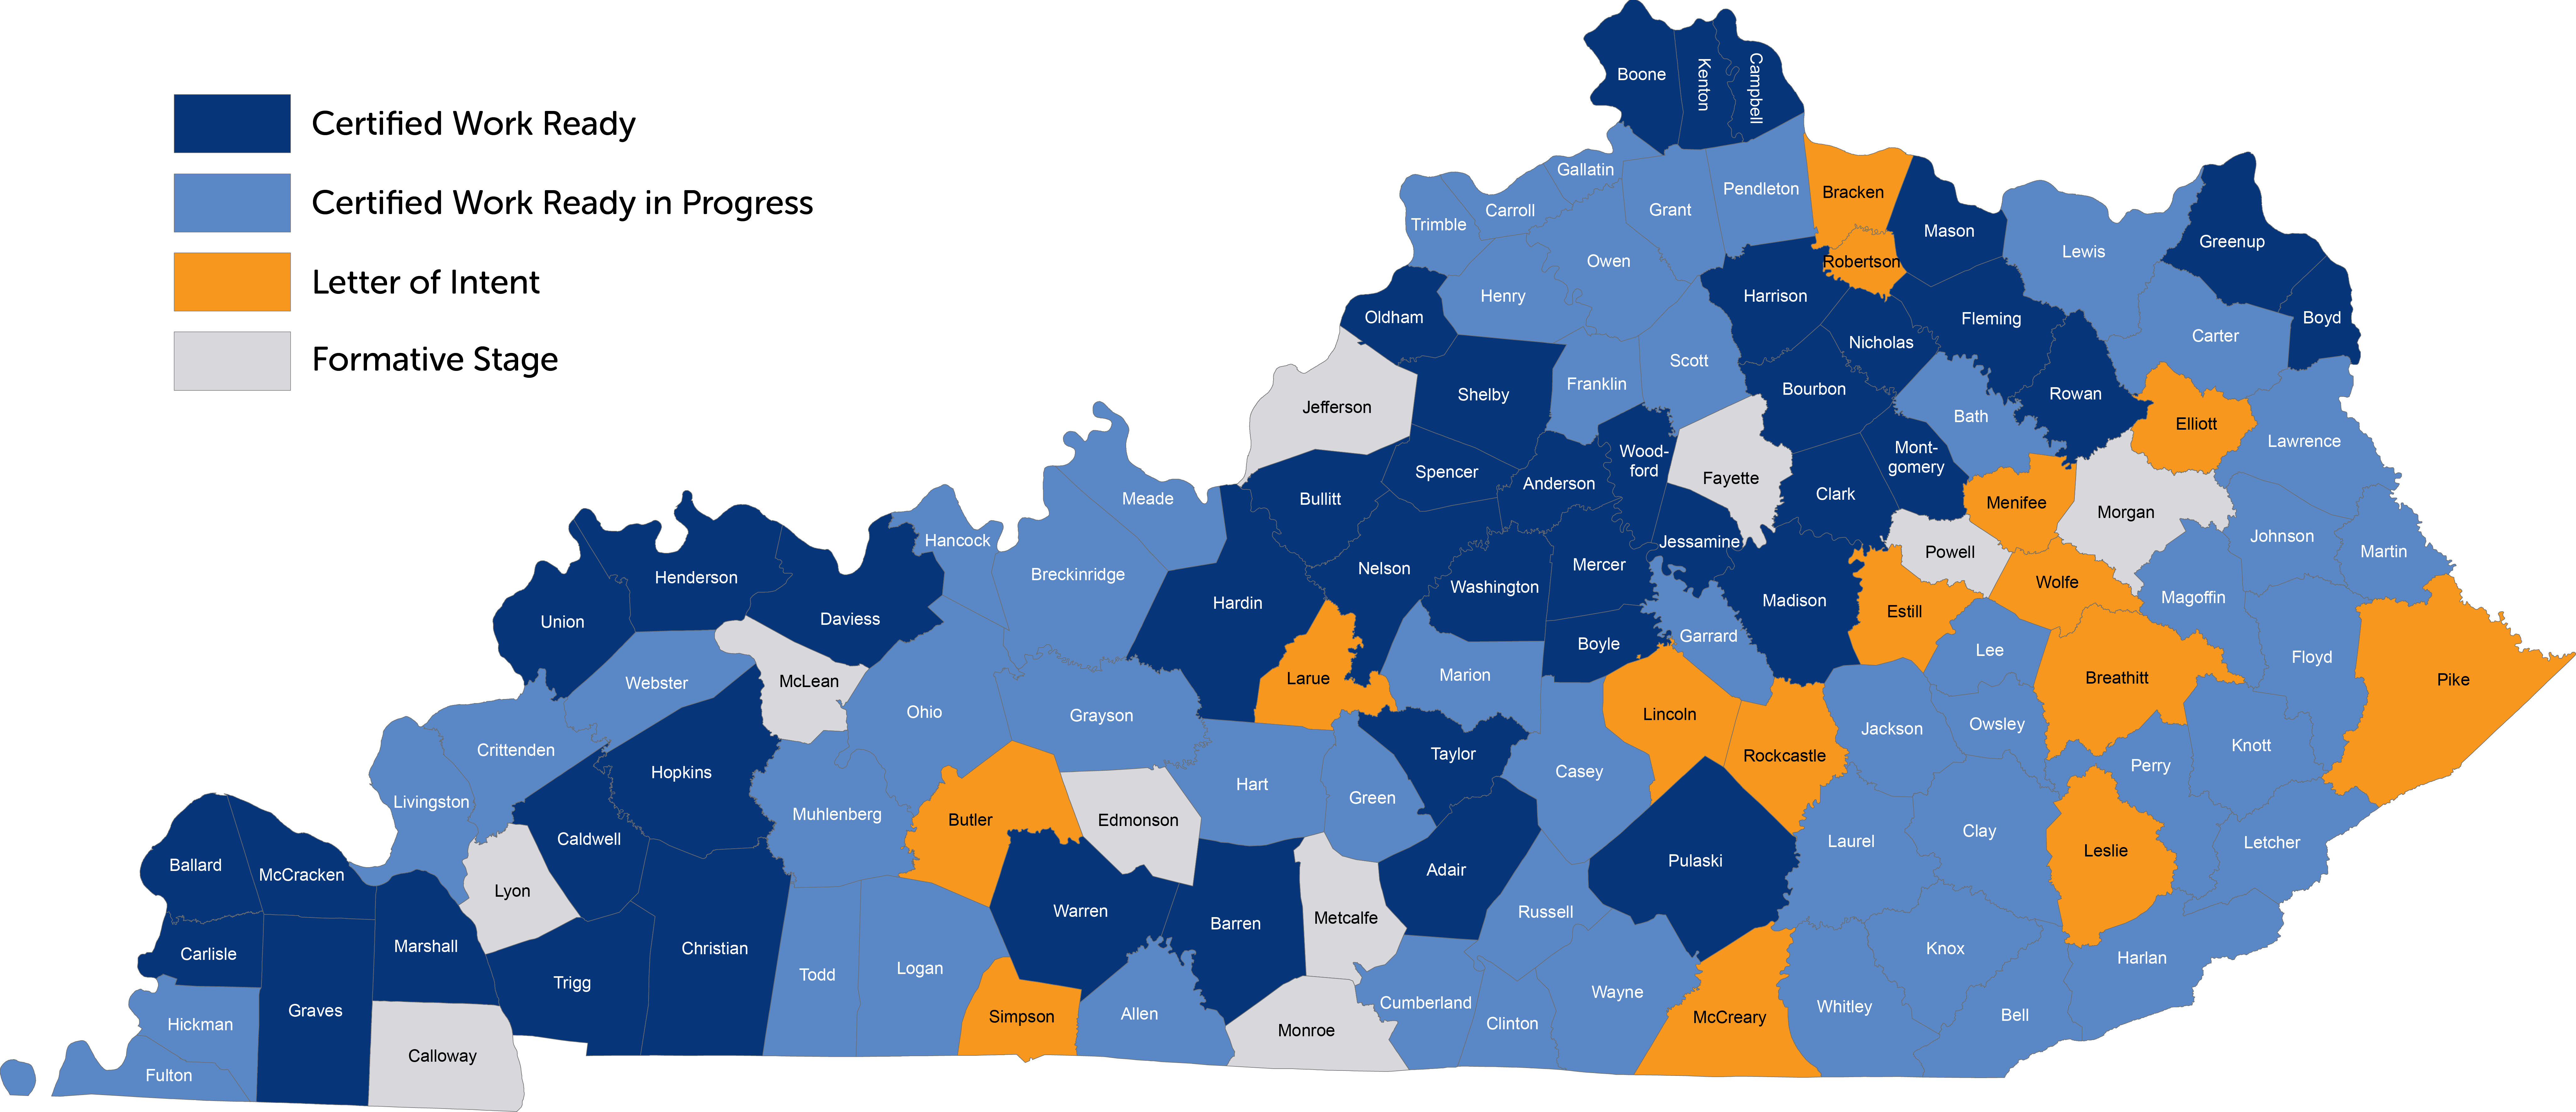 Home | WorkReady Ky Counties Map on ky weather map, ky geography map, ky states map, kentucky map, ky tourism map, ky mountains map, ky law enforcement map, ky rivers map, ky road map, ky cities map, ky tn map, ky climate map, ky city map, ky co map, ky towns map, ky counties by zip, ky senate district map, ky regions map, ky lake map, ky regional map,